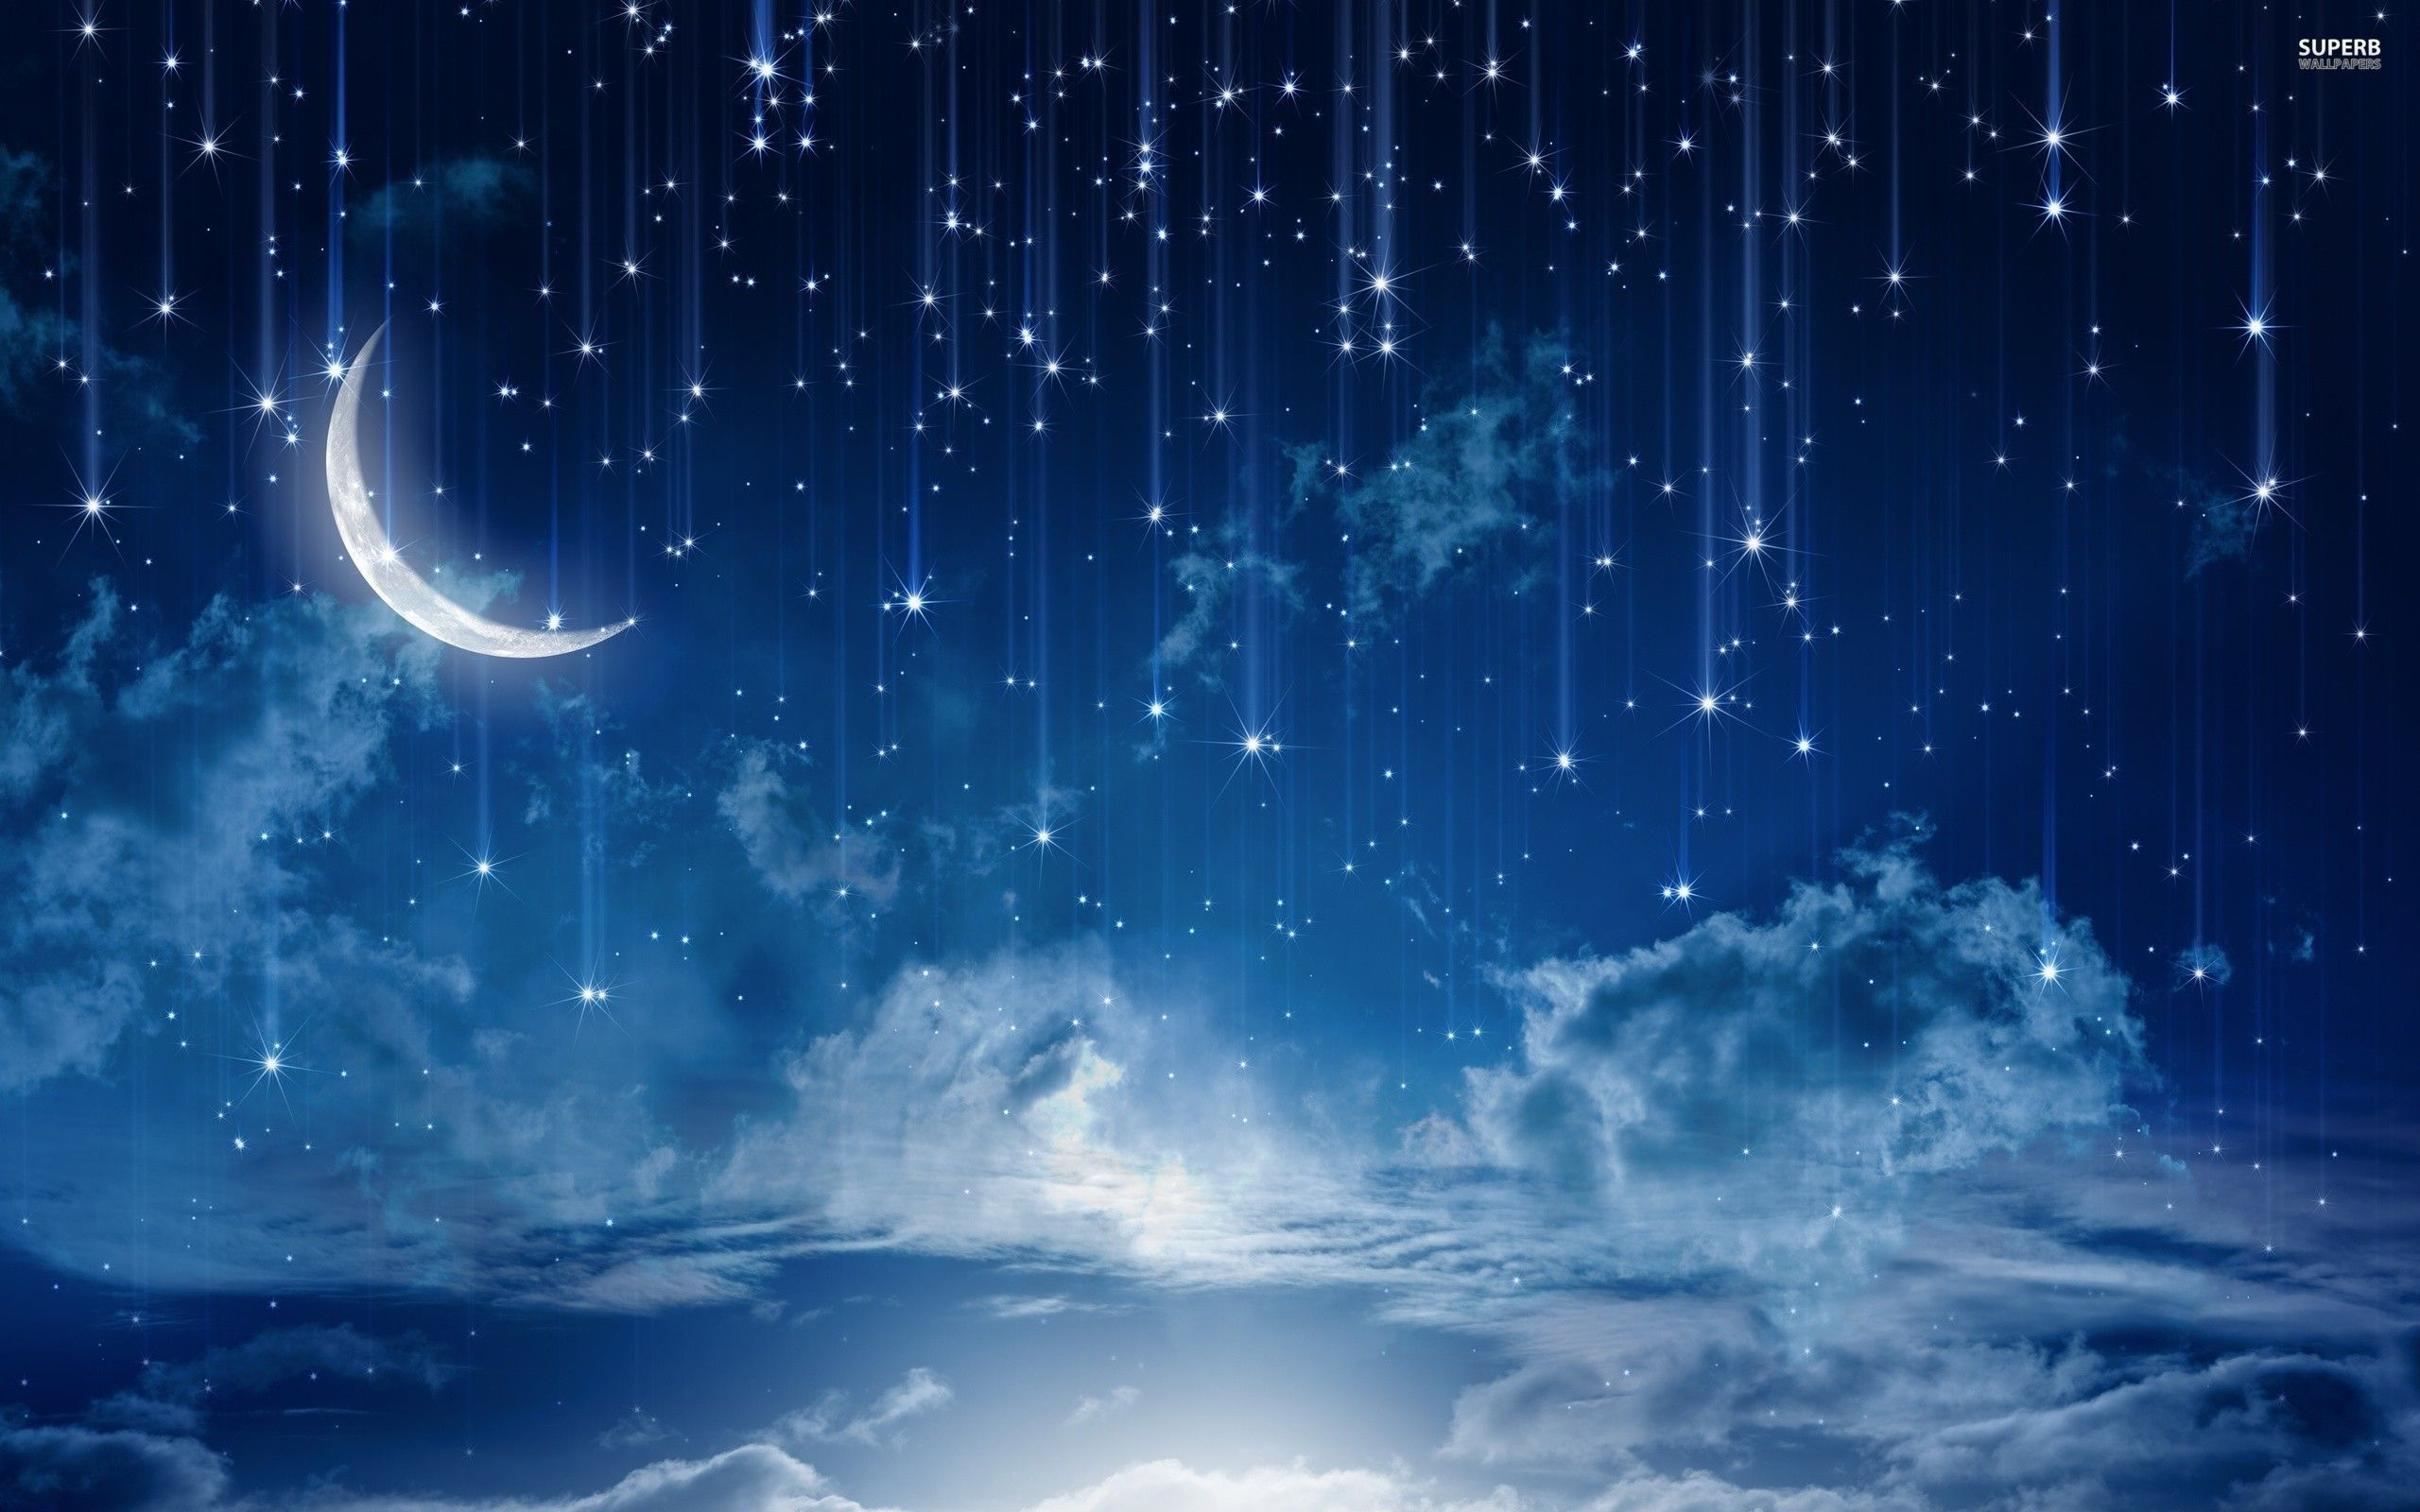 Starry Night Sky Hd Wallpapers With Images Night Sky Wallpaper